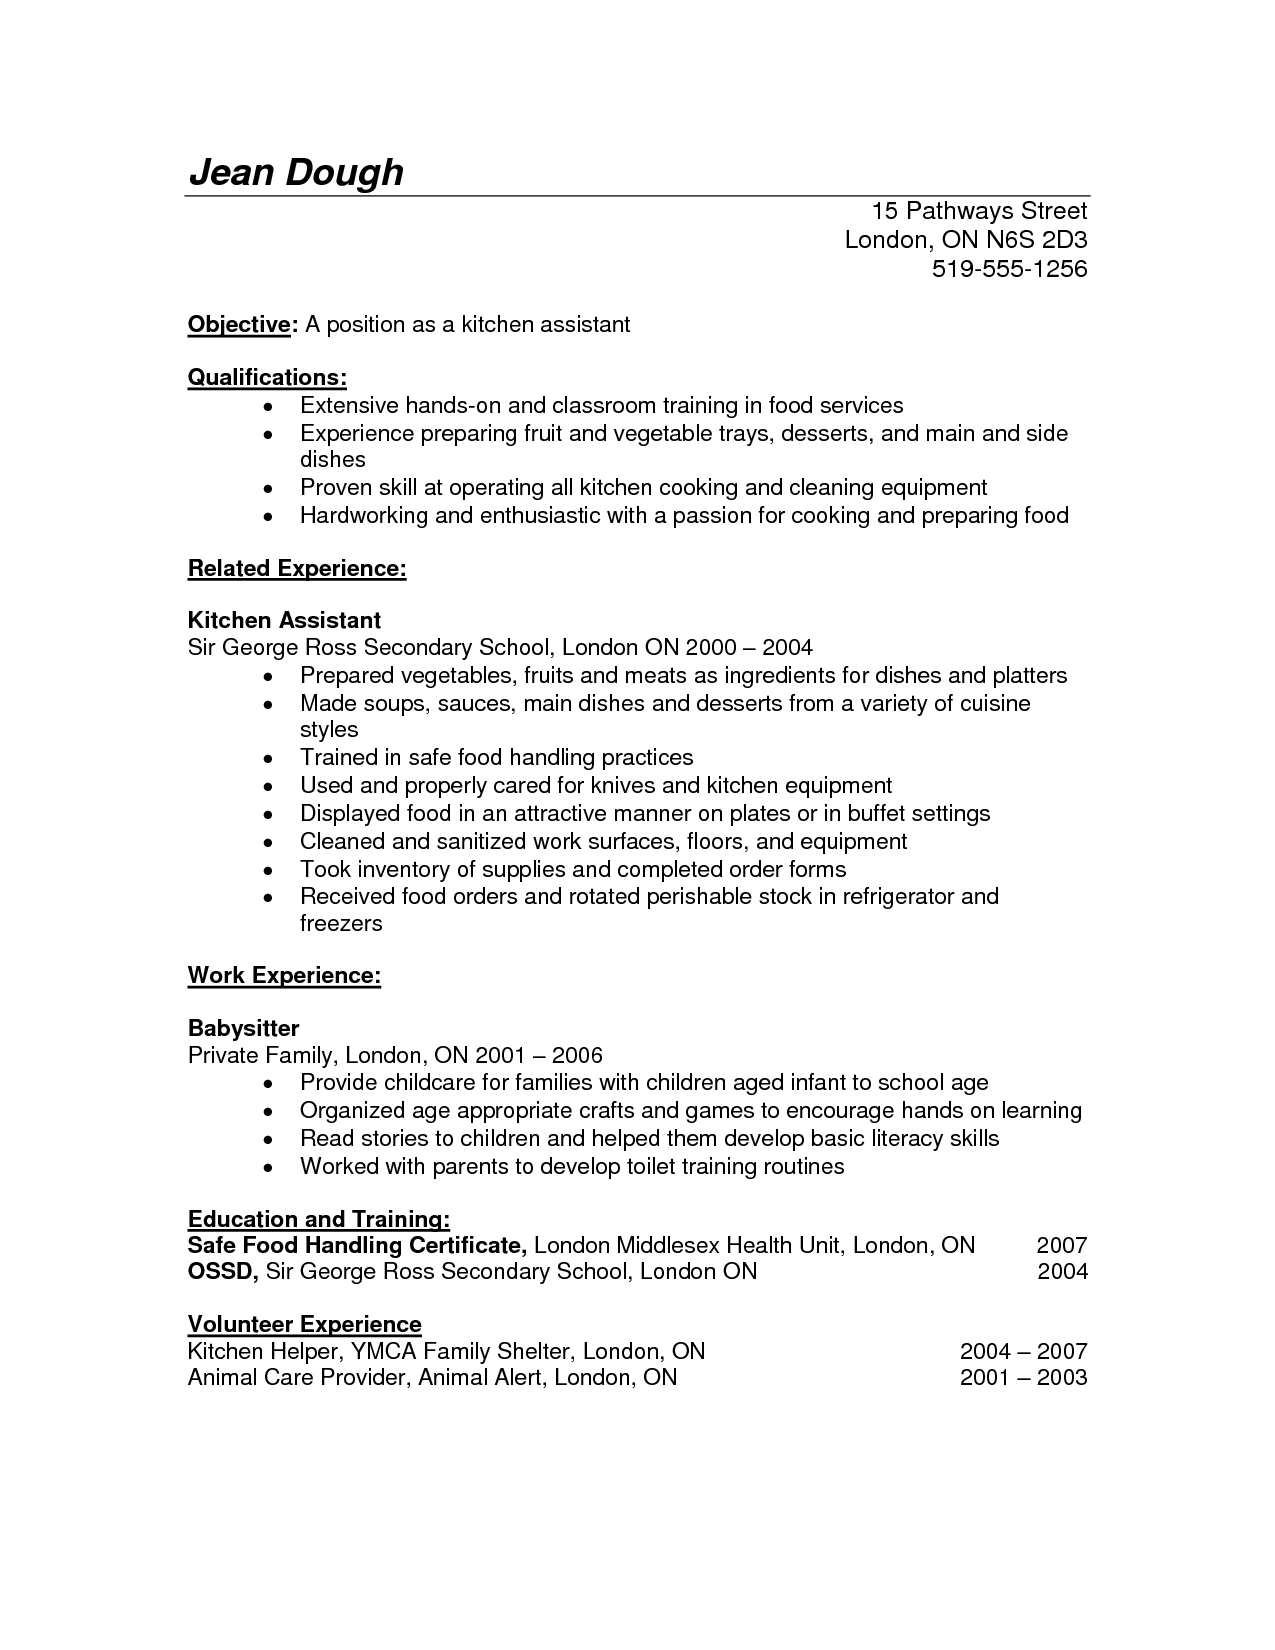 Cashier Sample Resume Enchanting Cashier Resume Job Duties Sample Cover Objective Letter  Resumes .